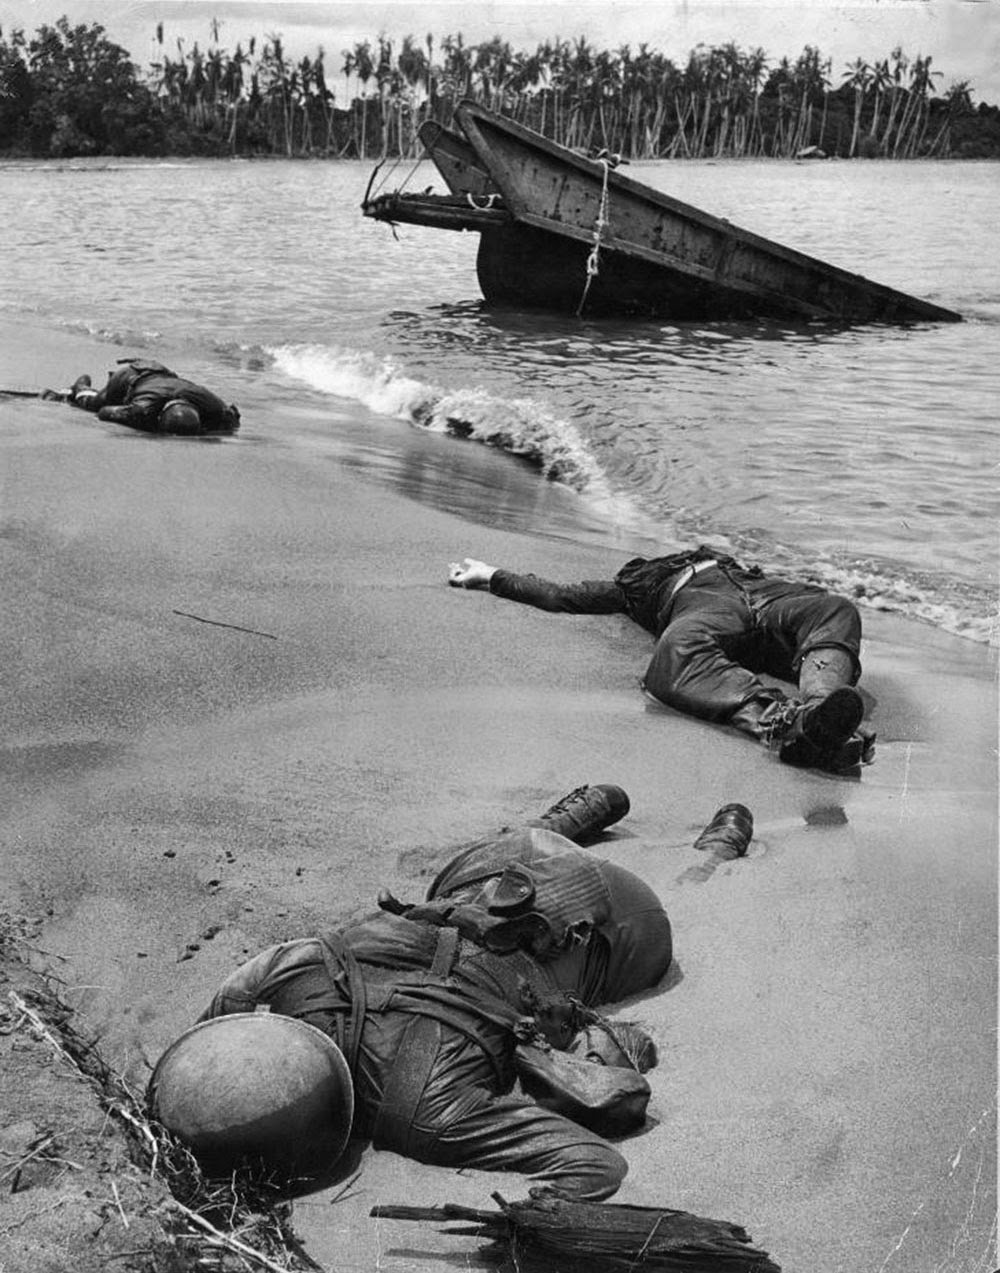 Bodies of dead American soldiers near half sunken sanding craft on Buna beach. Due to the number of dead bodies on the beach, the Allies nicknamed it